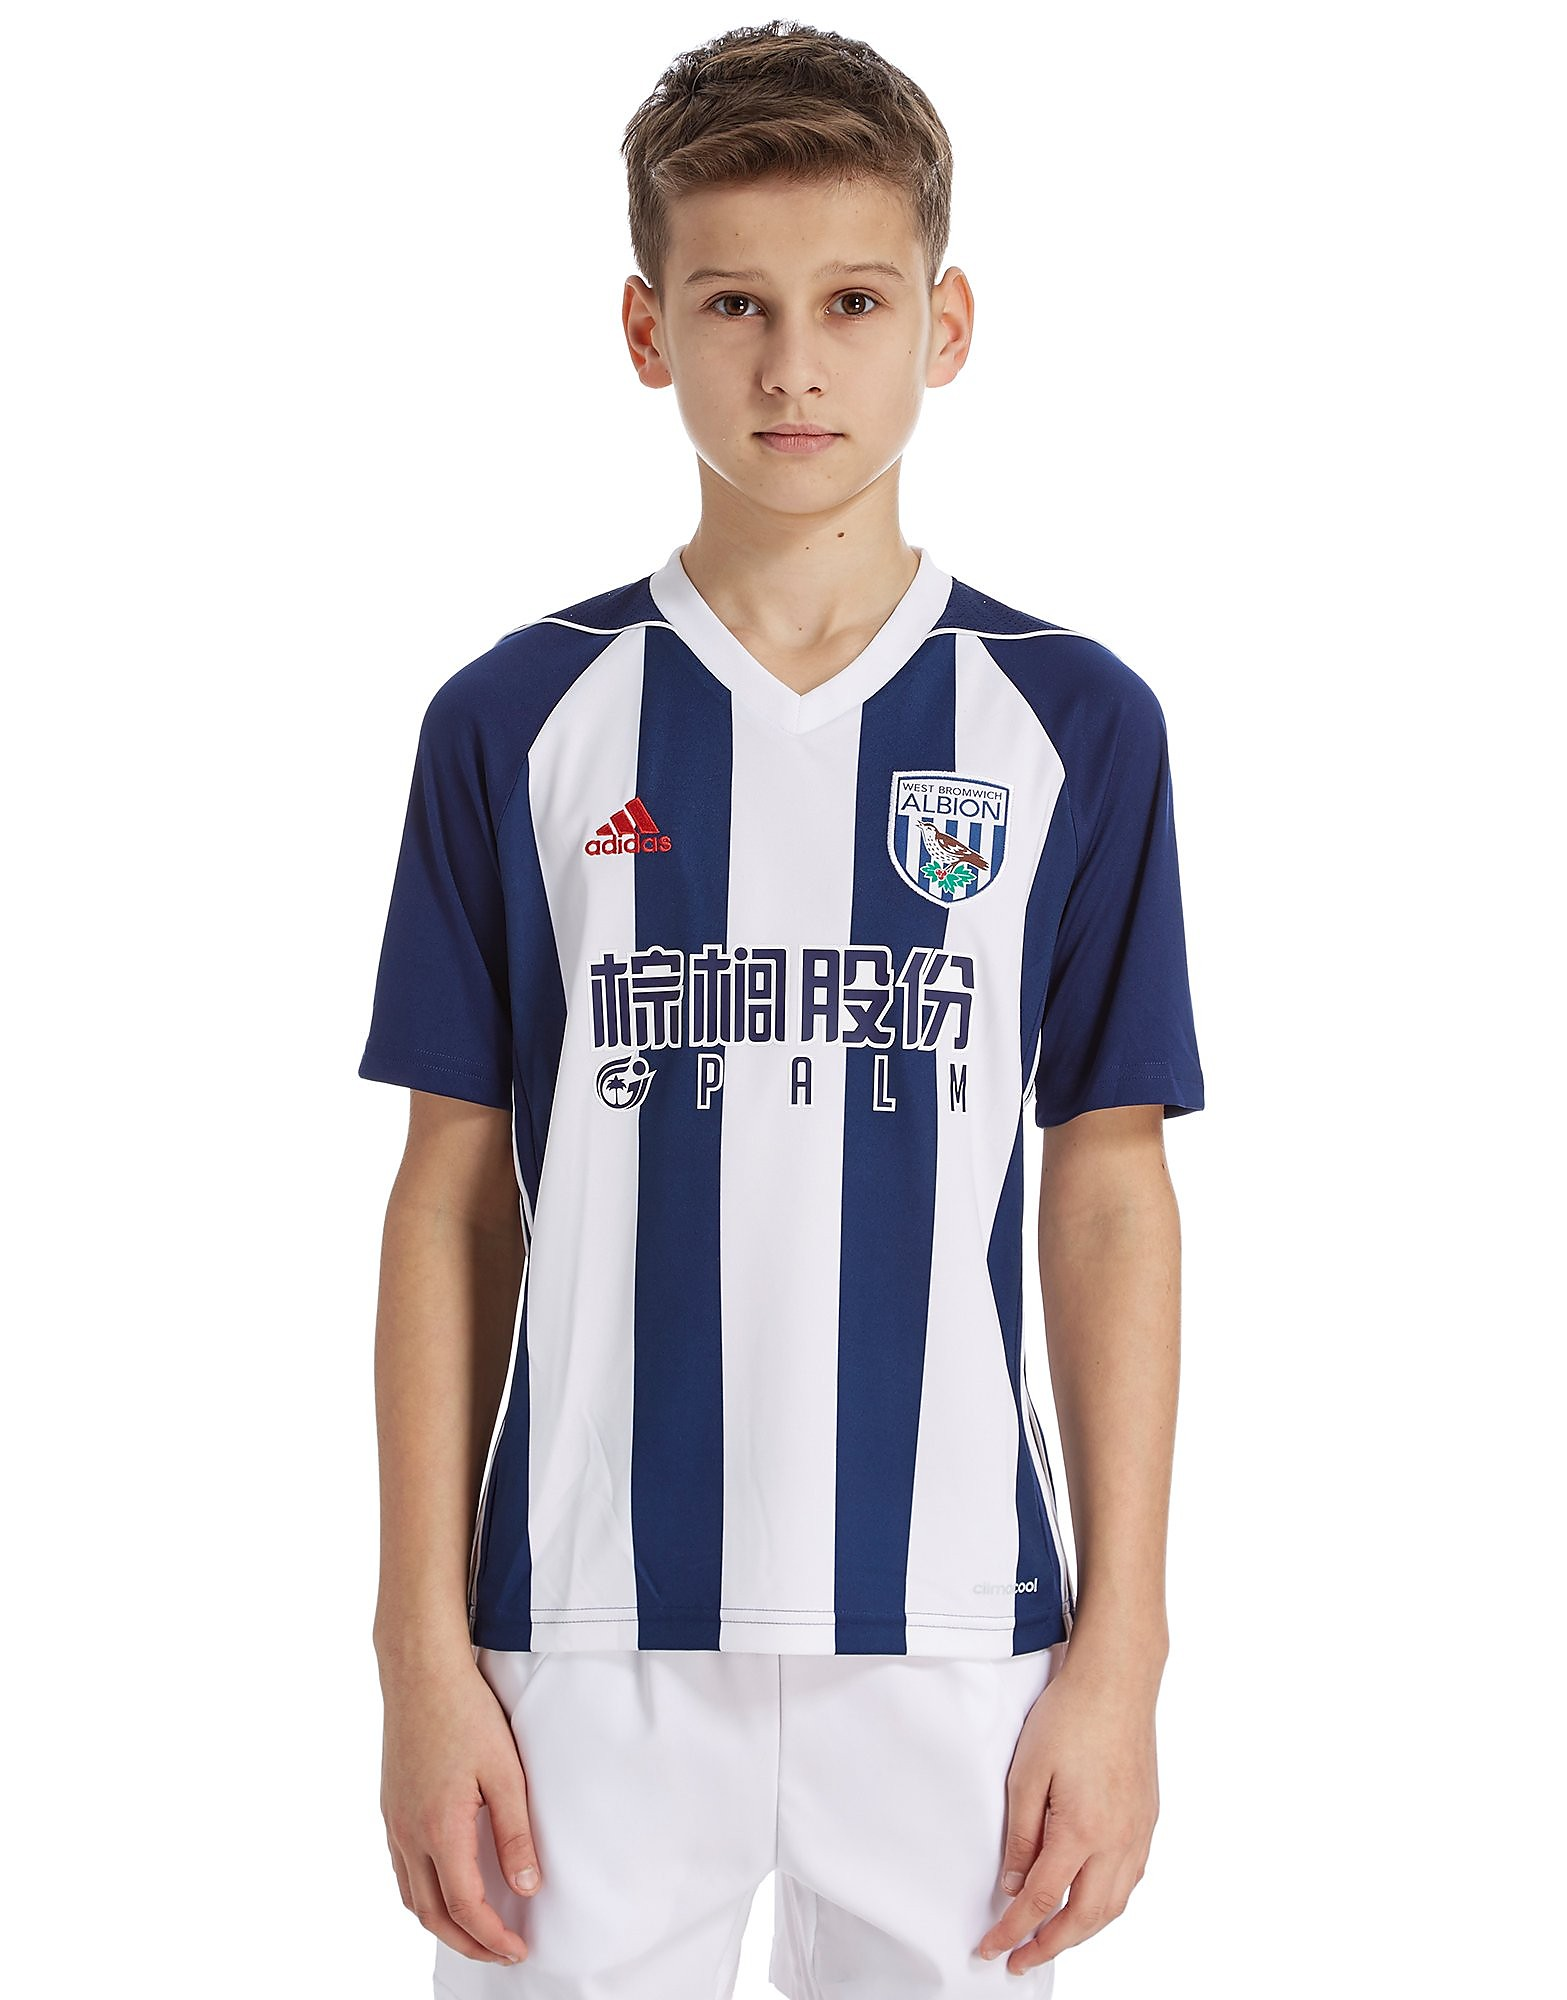 adidas West Brom Albion Home 17/18 Shirt Junior